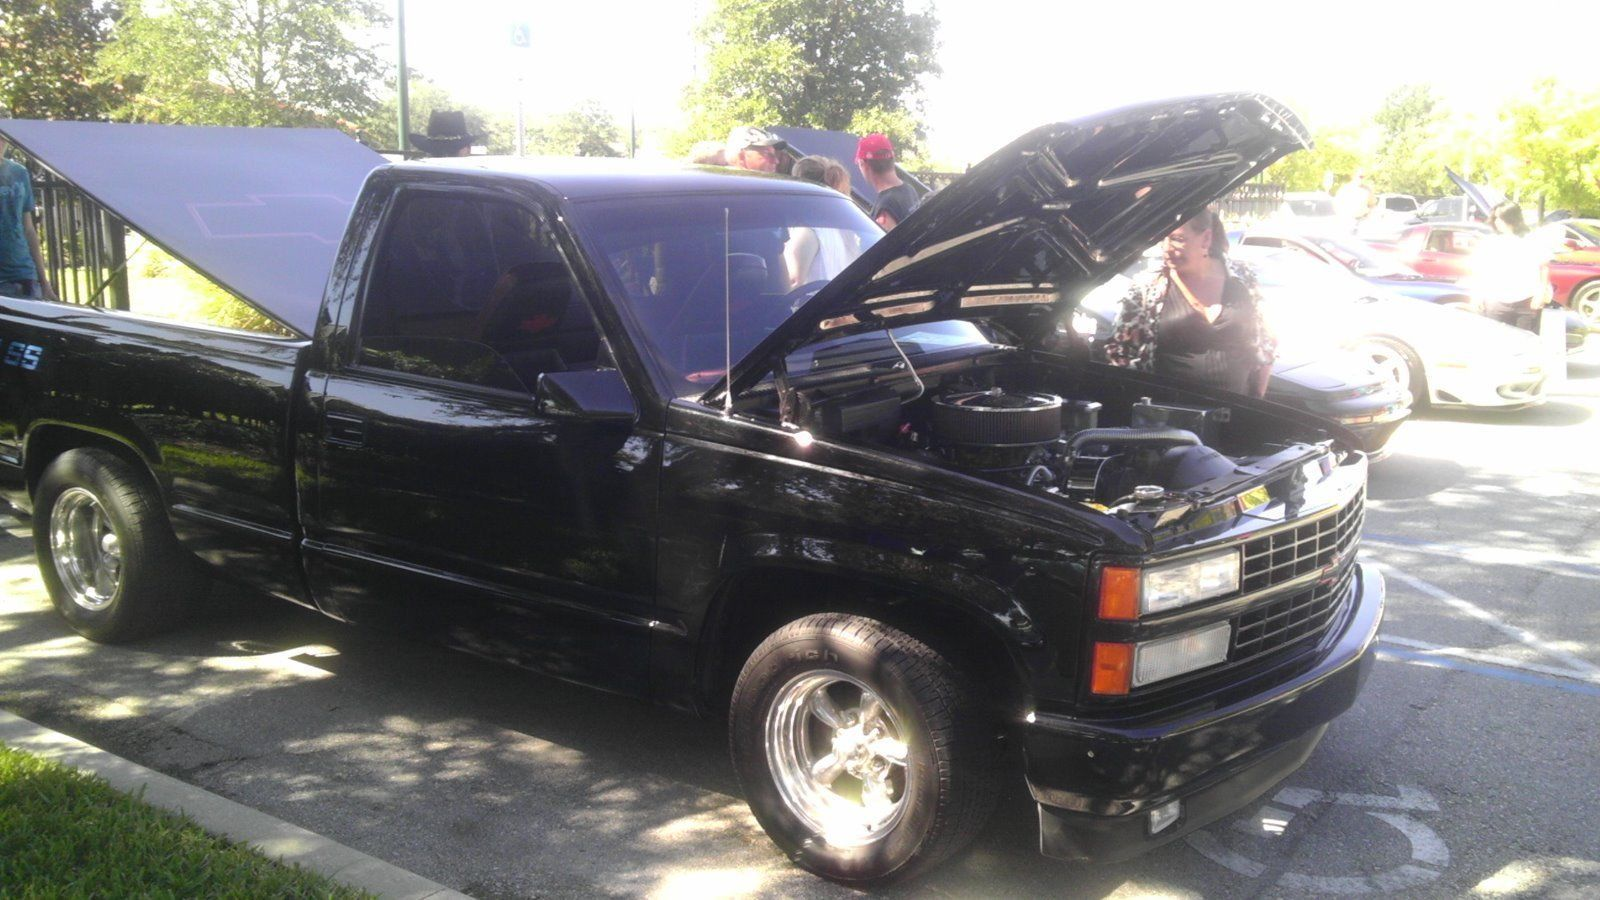 All Chevy c1500 chevy : 1990 Chevy C1500 454SS Pickup Truck | Custom trucks for sale ...